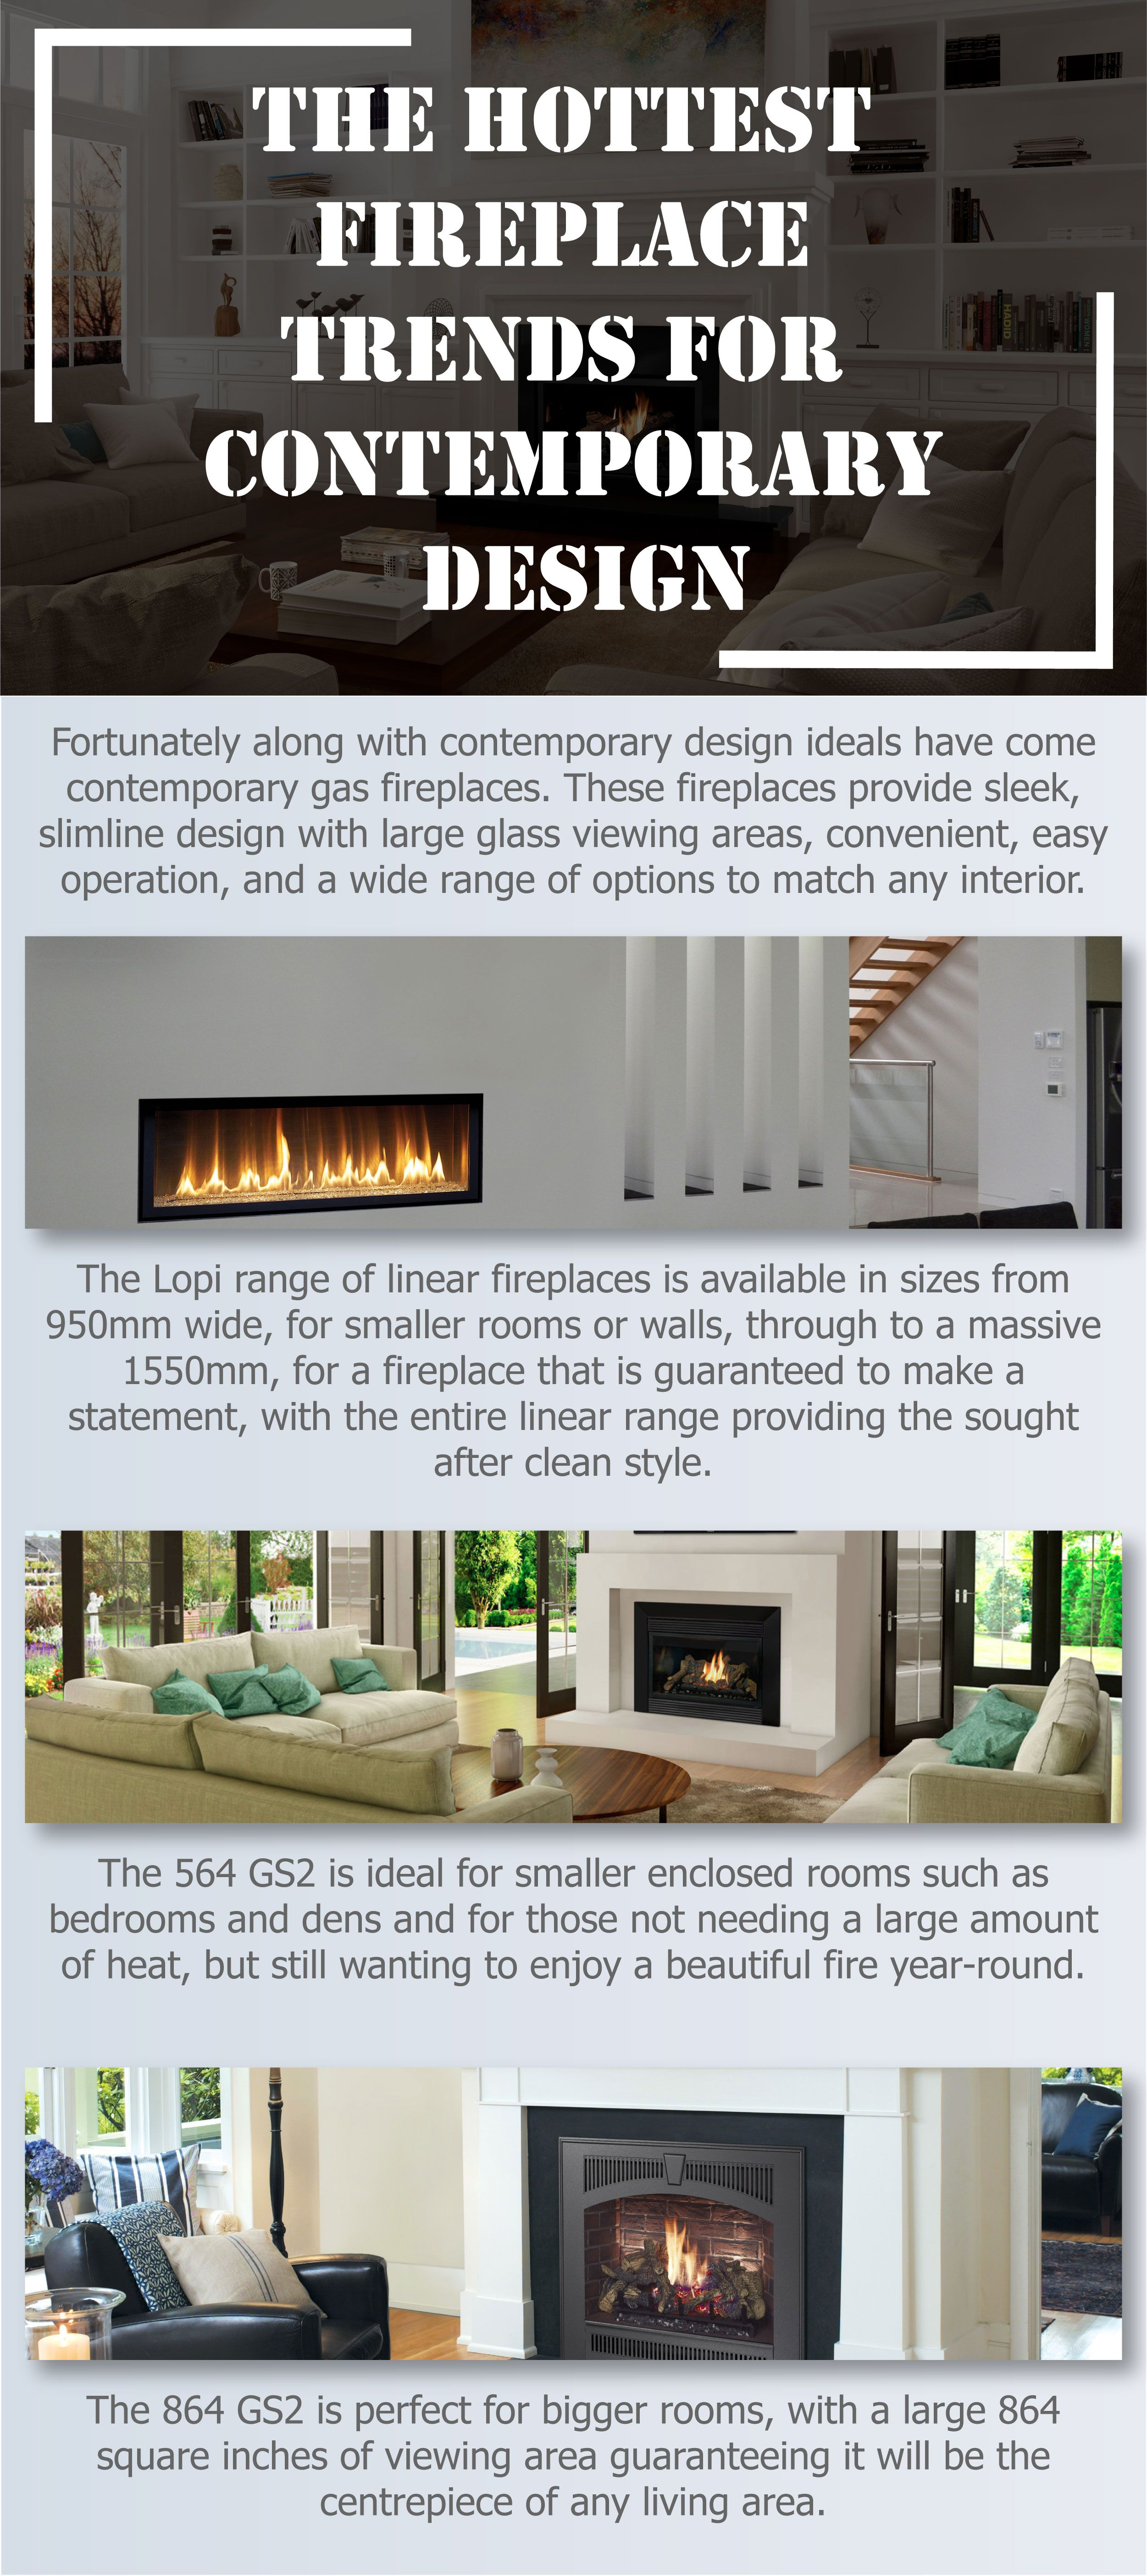 The Modern Design Ideas Have Come Present Gas Fireplaces Those Fireplaces Produce Smooth Slim Contemporary Gas Fireplace Contemporary Design Modern Fireplace